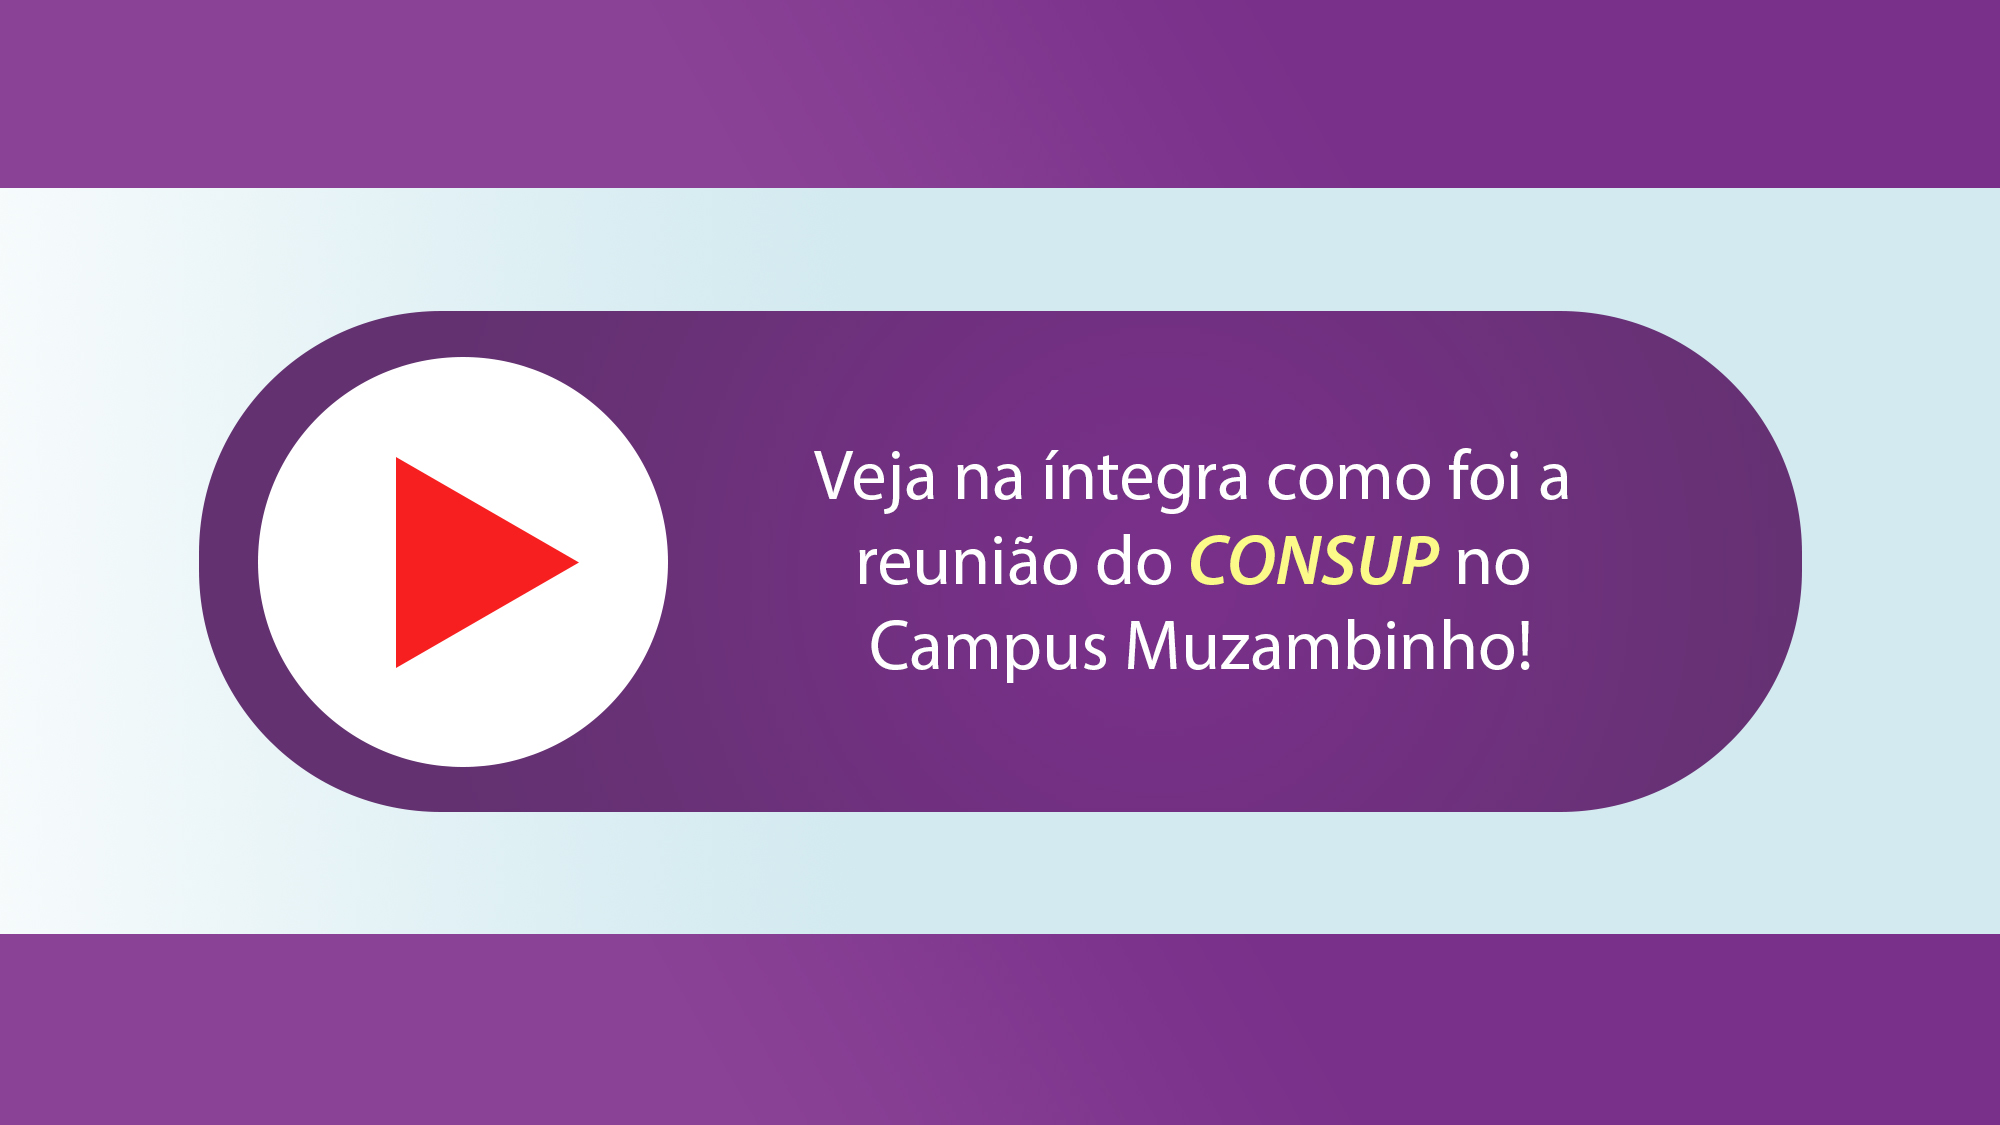 Reunião do CONSUP